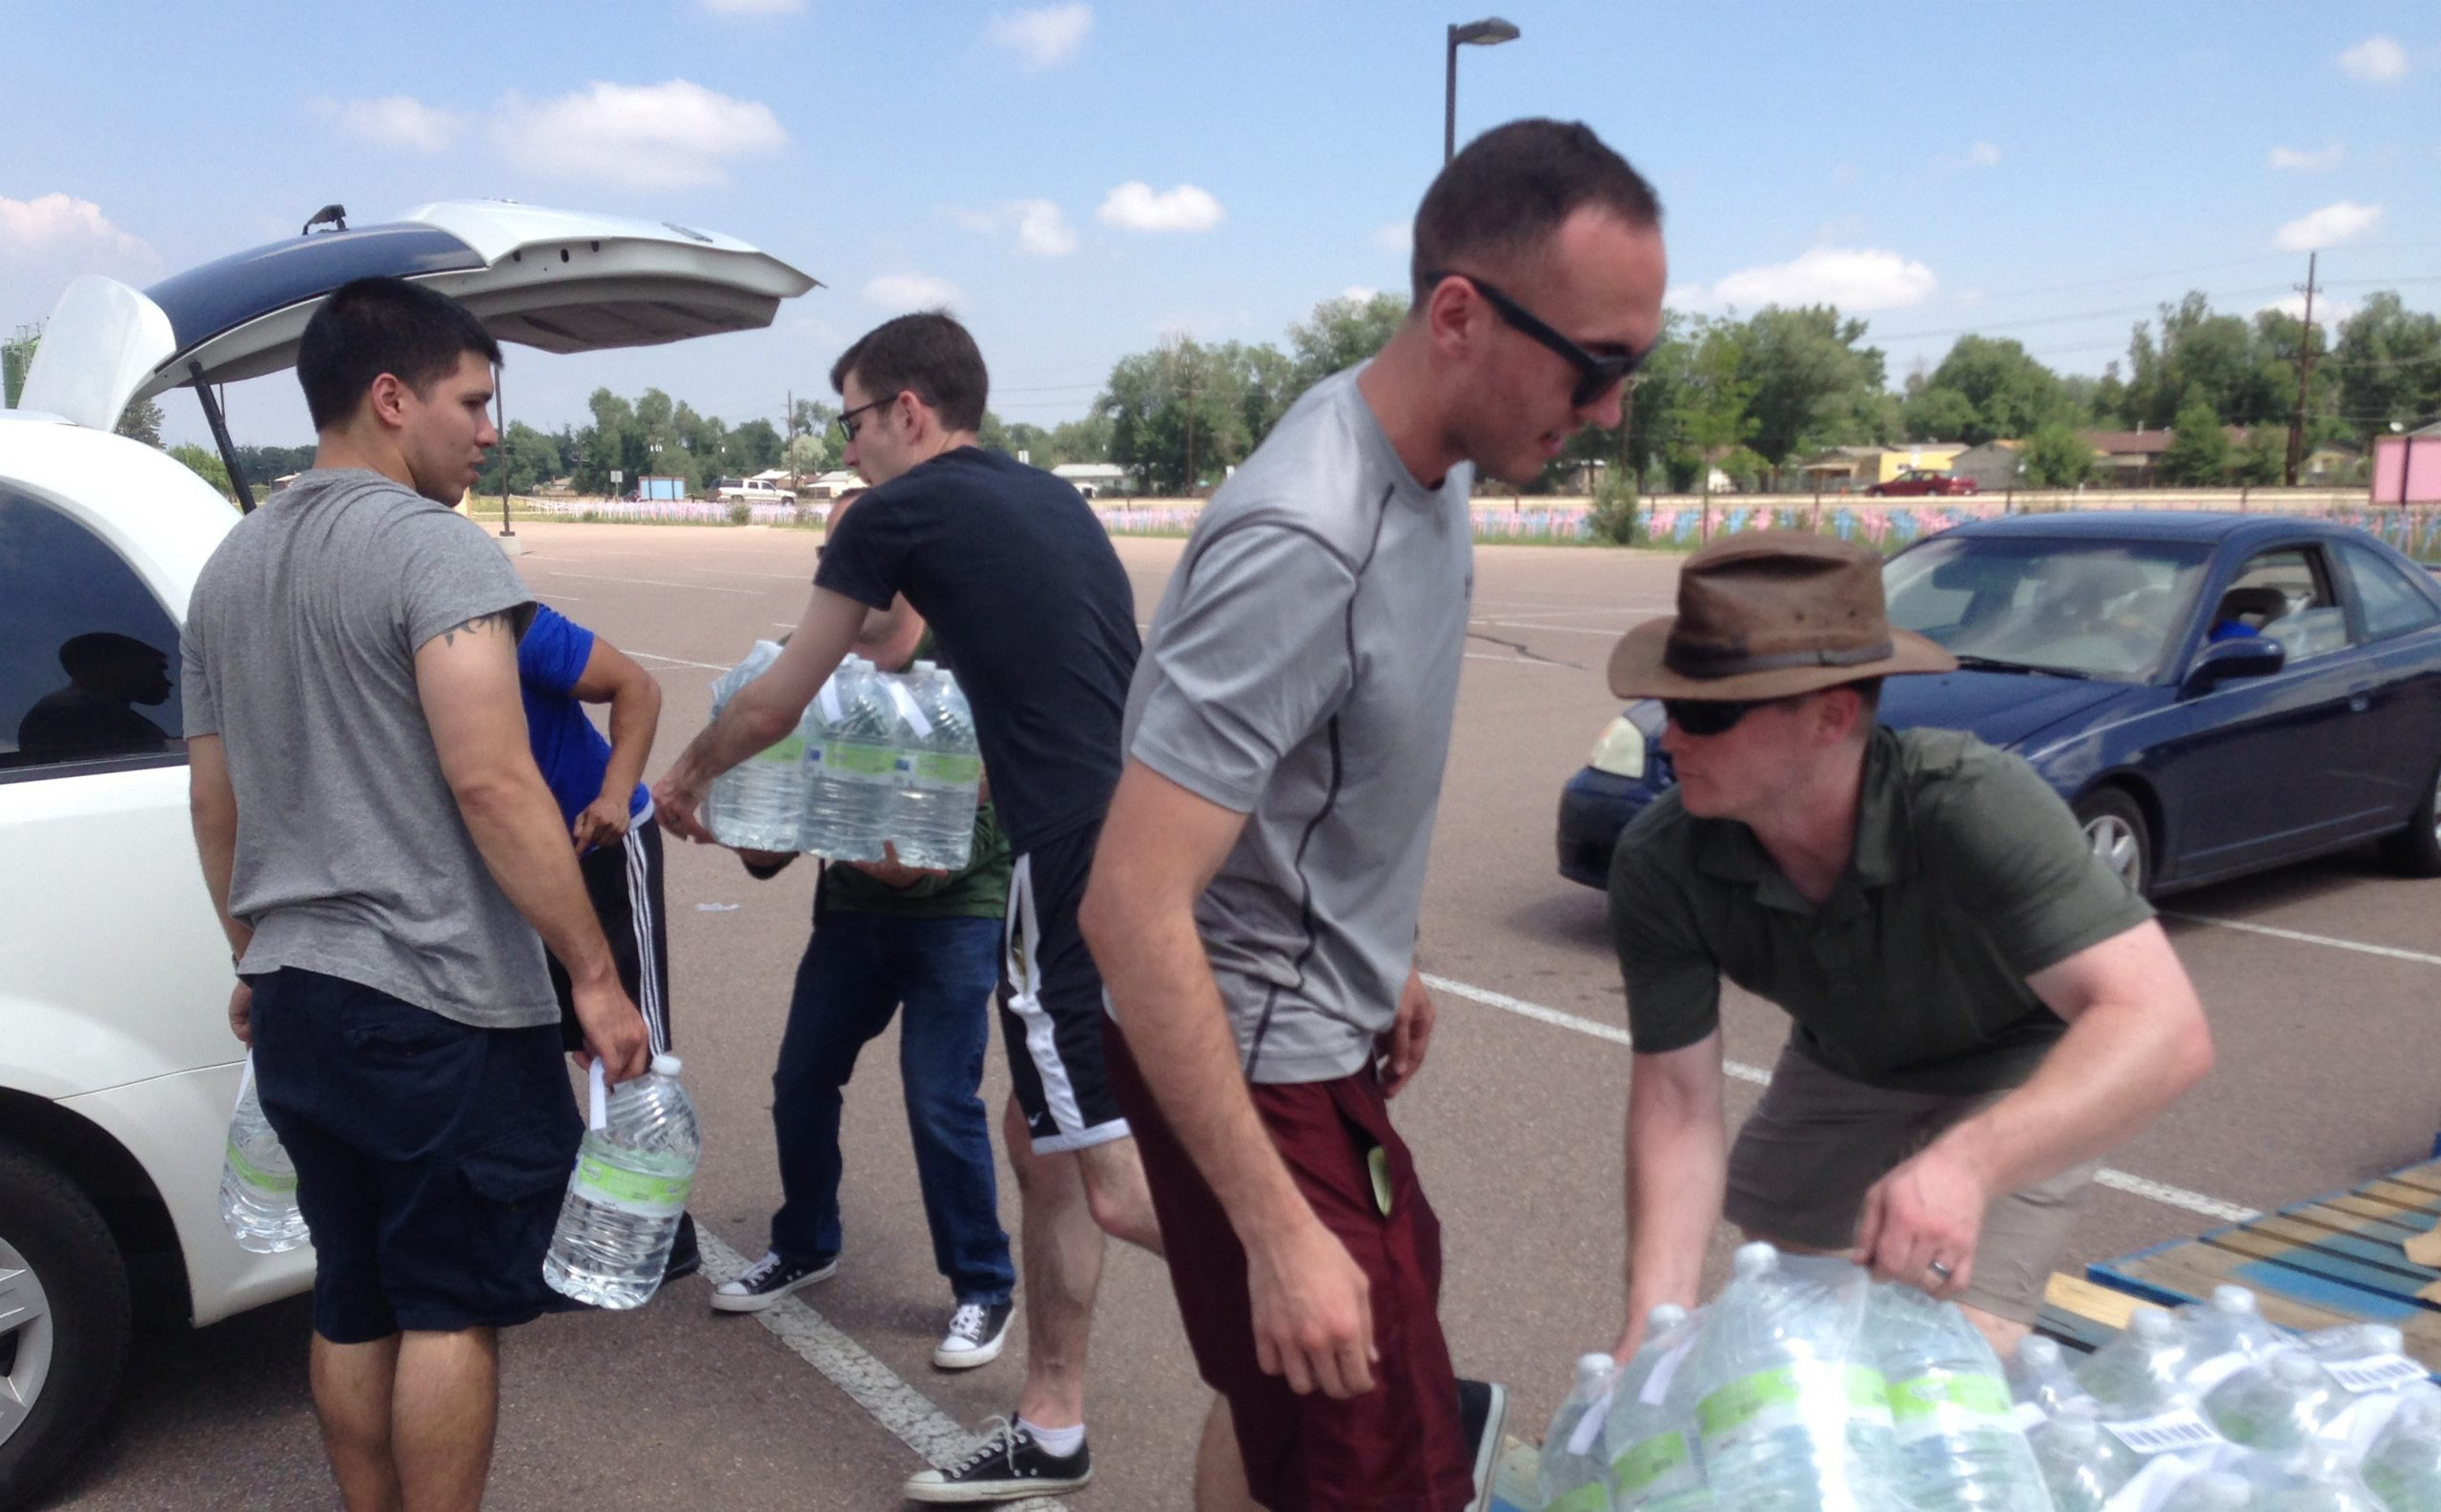 Volunteers with Care and Share Food Bank distrubted free bottled water to residents of Security, Widefield, and Fountain in July.